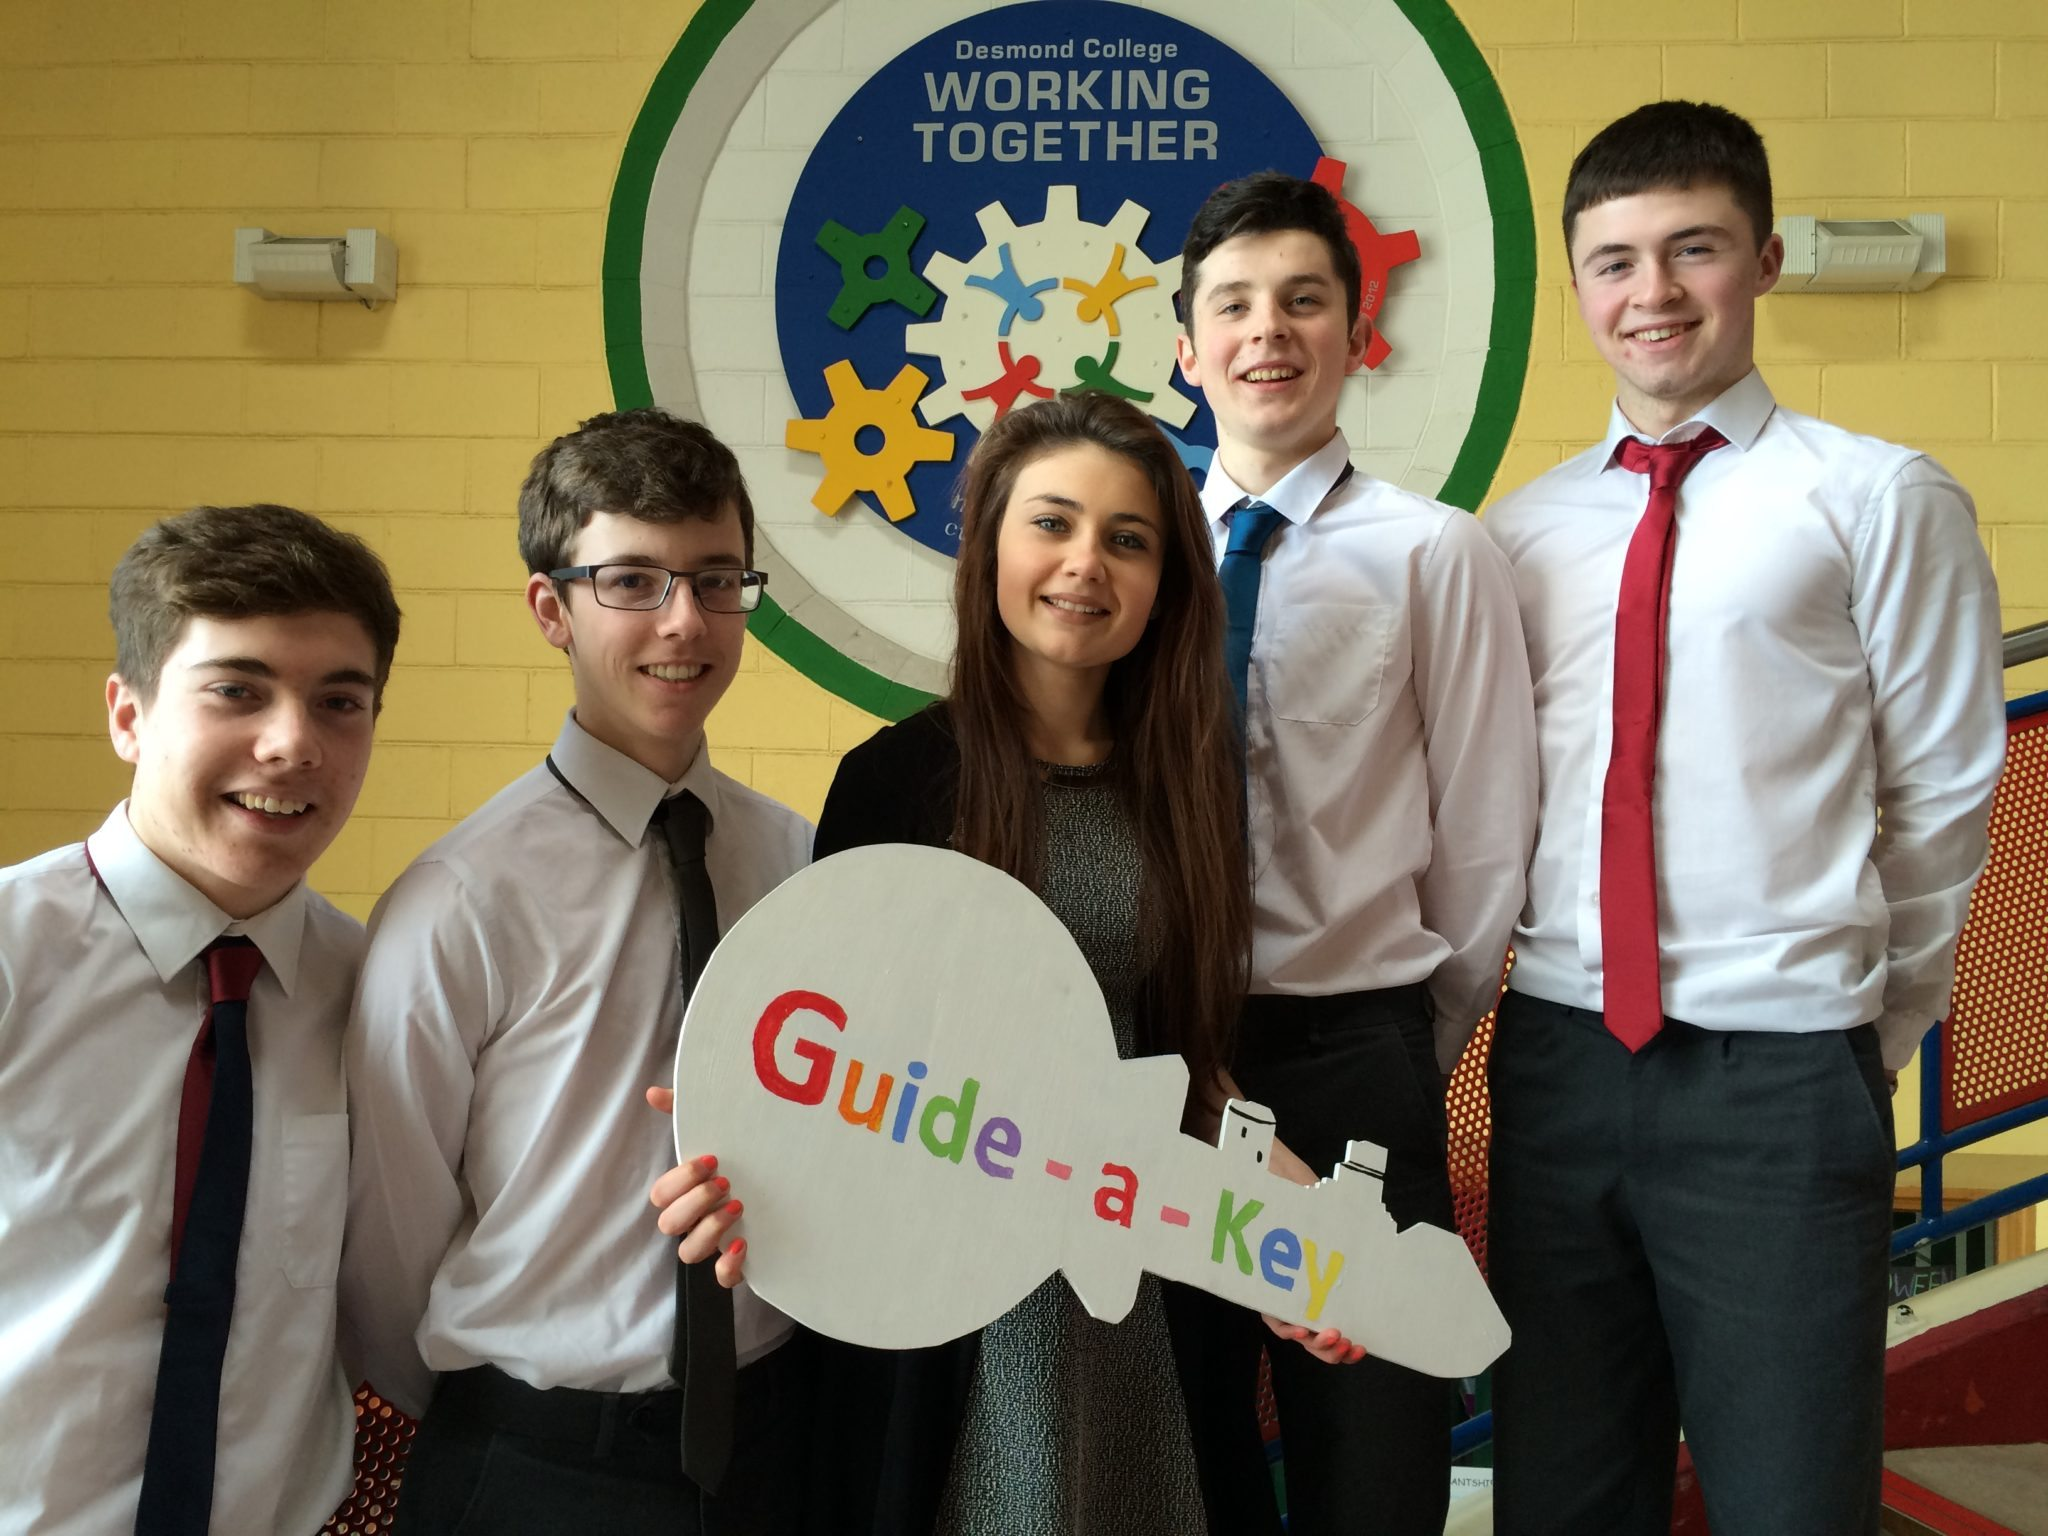 Young Enterprise 2015 : Seamus Hurley, Eamonn Browne, Emma Herbert, Diarmuid Curtin and Eoin Considine.